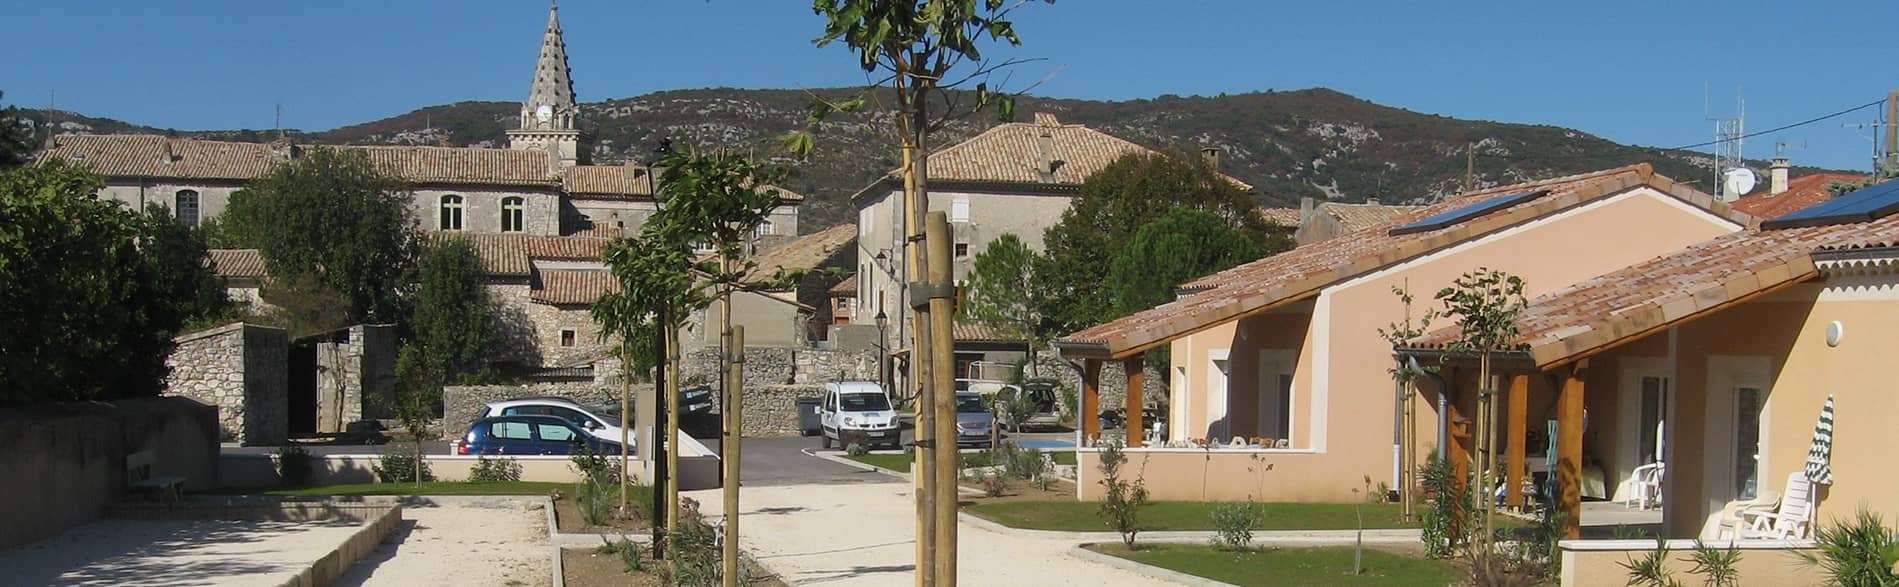 Saint Remeze Village Gorge De L Ardeche 3